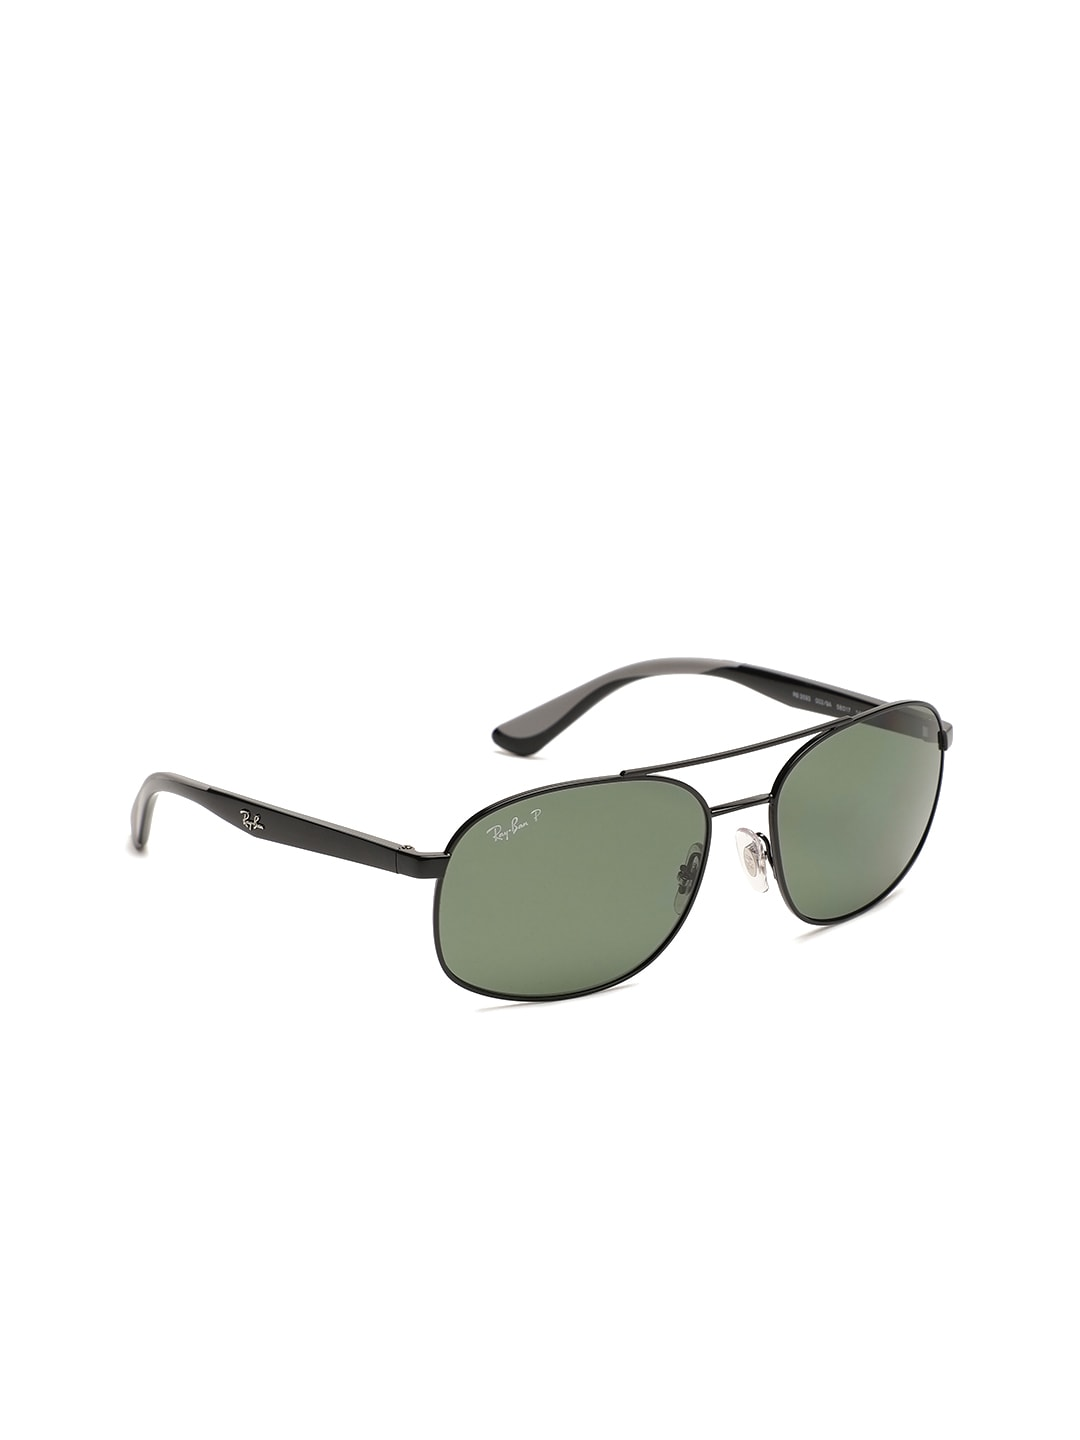 e011c51b581 Ray Ban - Buy Ray Ban Sunglasses   Frames Online In India